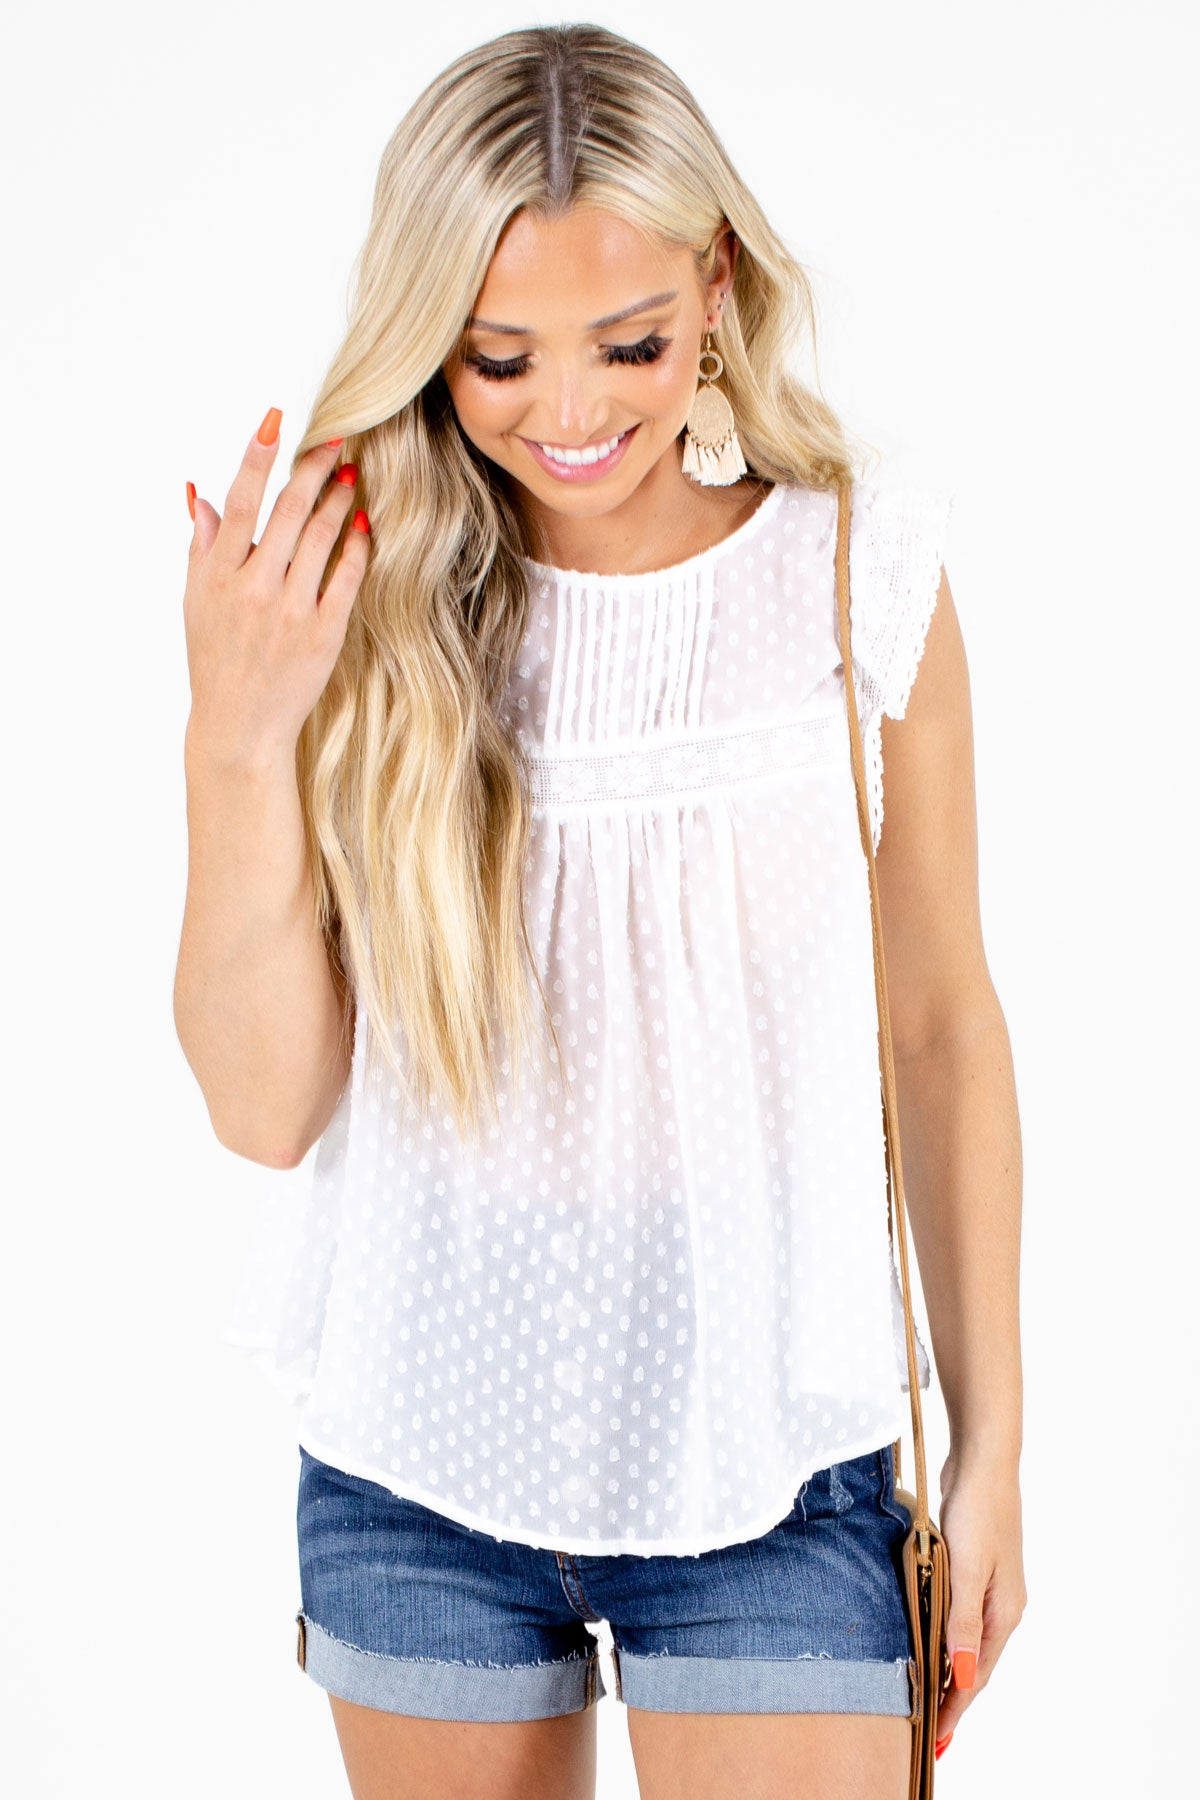 White Textured Material Boutqiue Blouses for Women